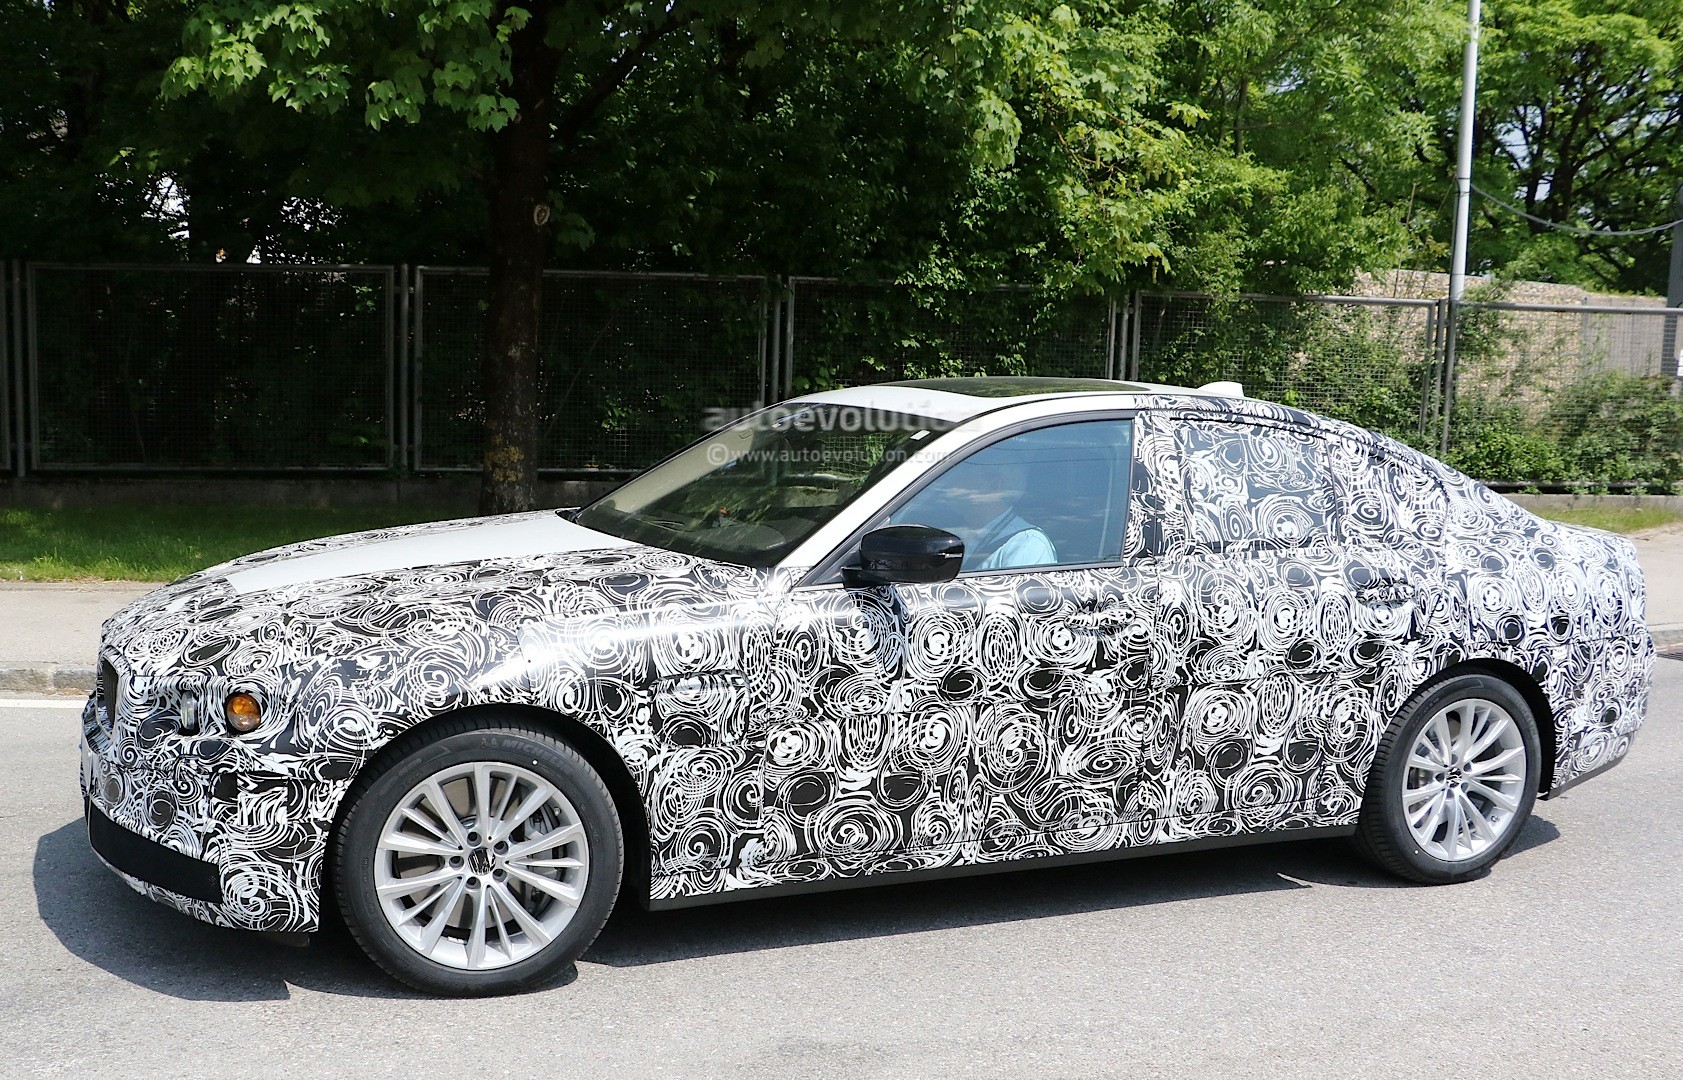 2017 - [BMW] M5 [F90] Spyshots-all-new-bmw-m5-g80-test-mule-or-5-series-m-performance-car_3